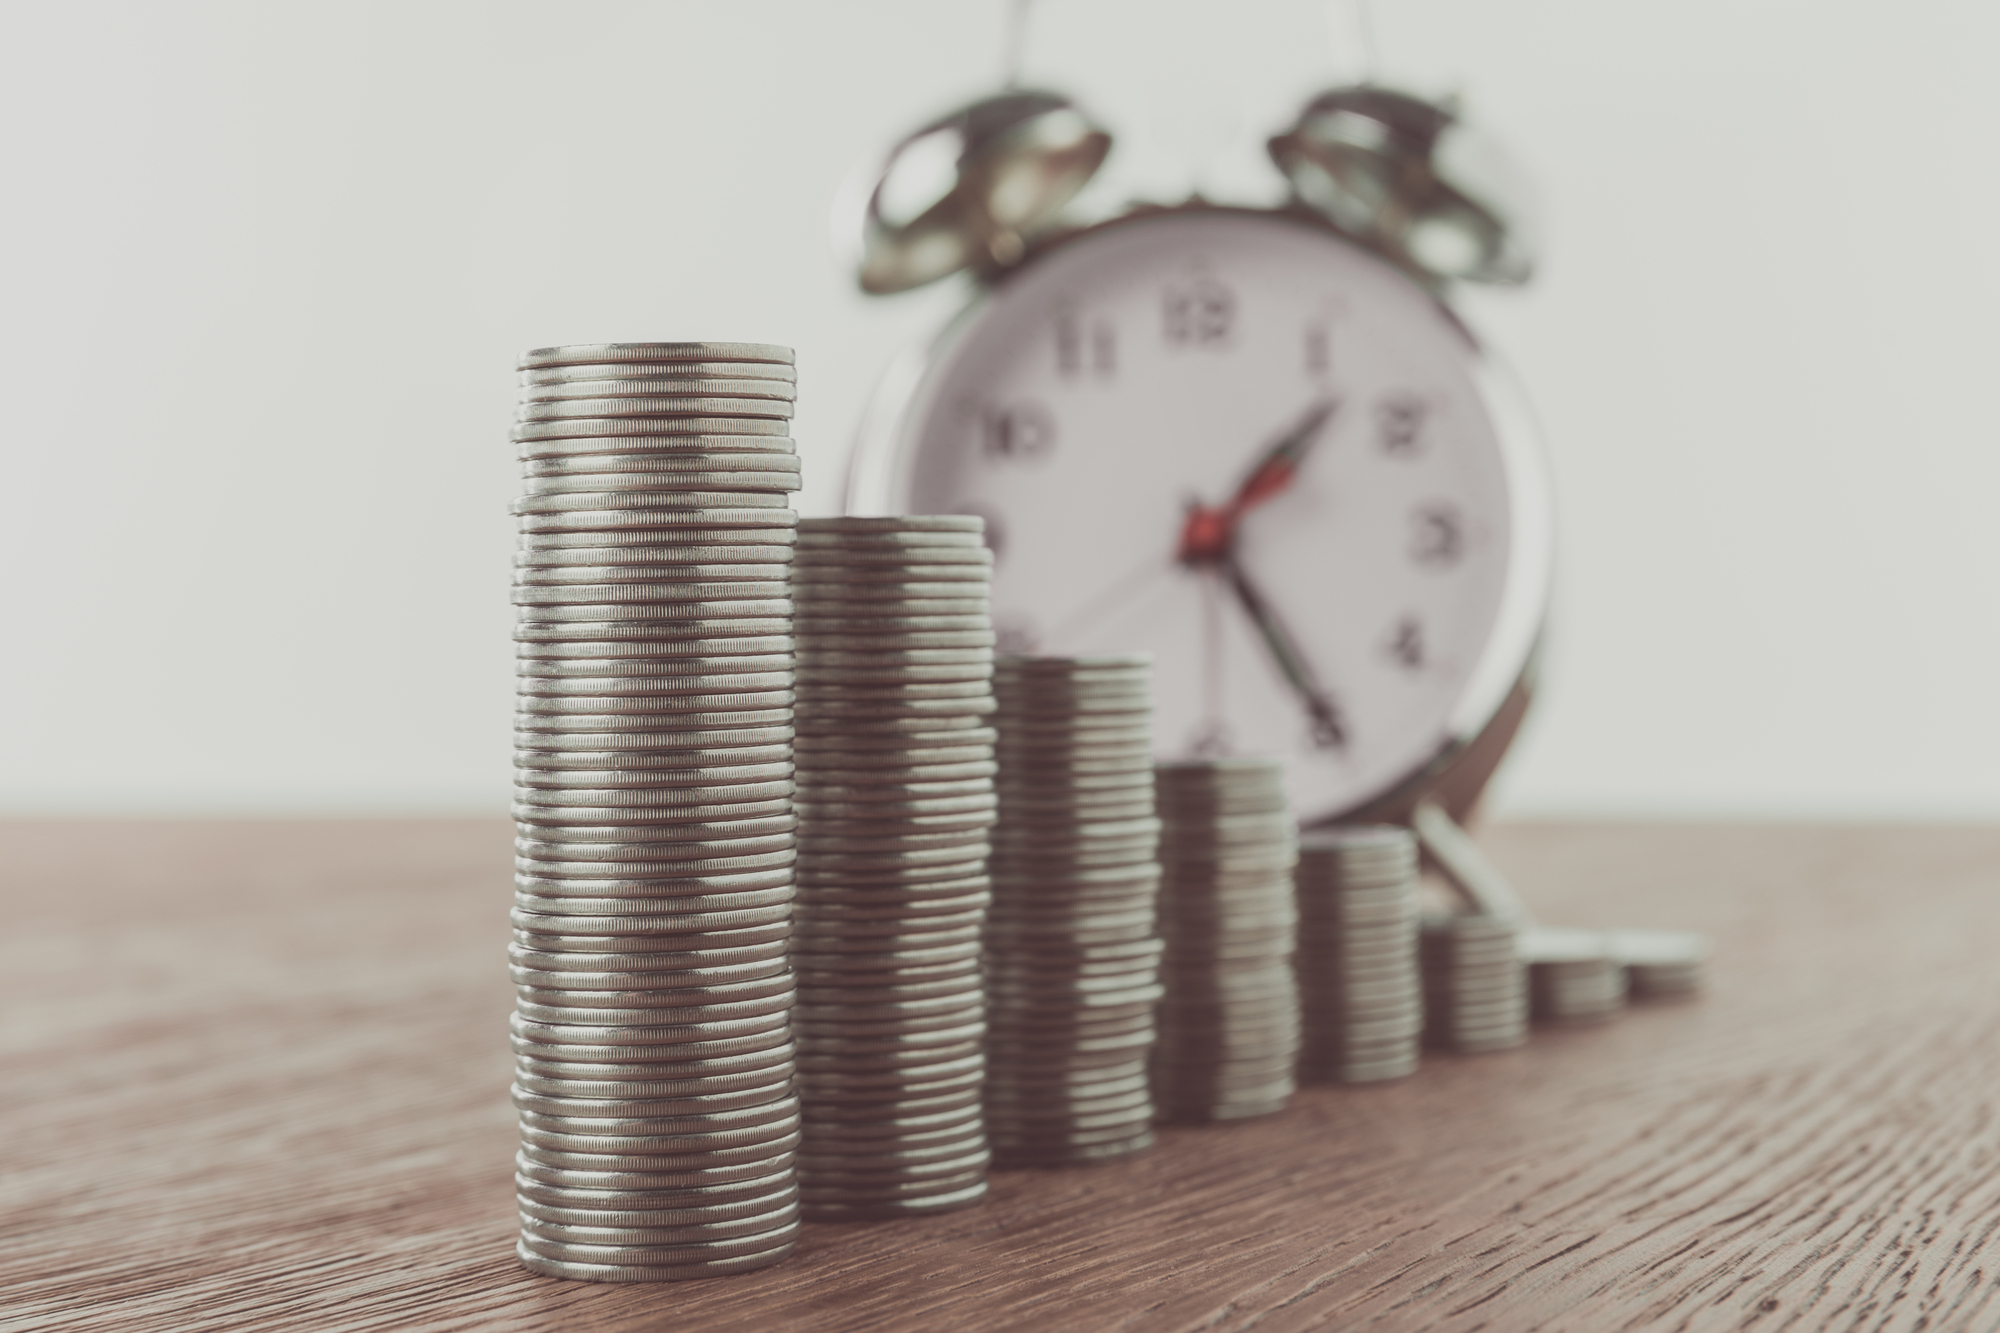 Stacks of coins and alarm clock on tabletop, saving concept